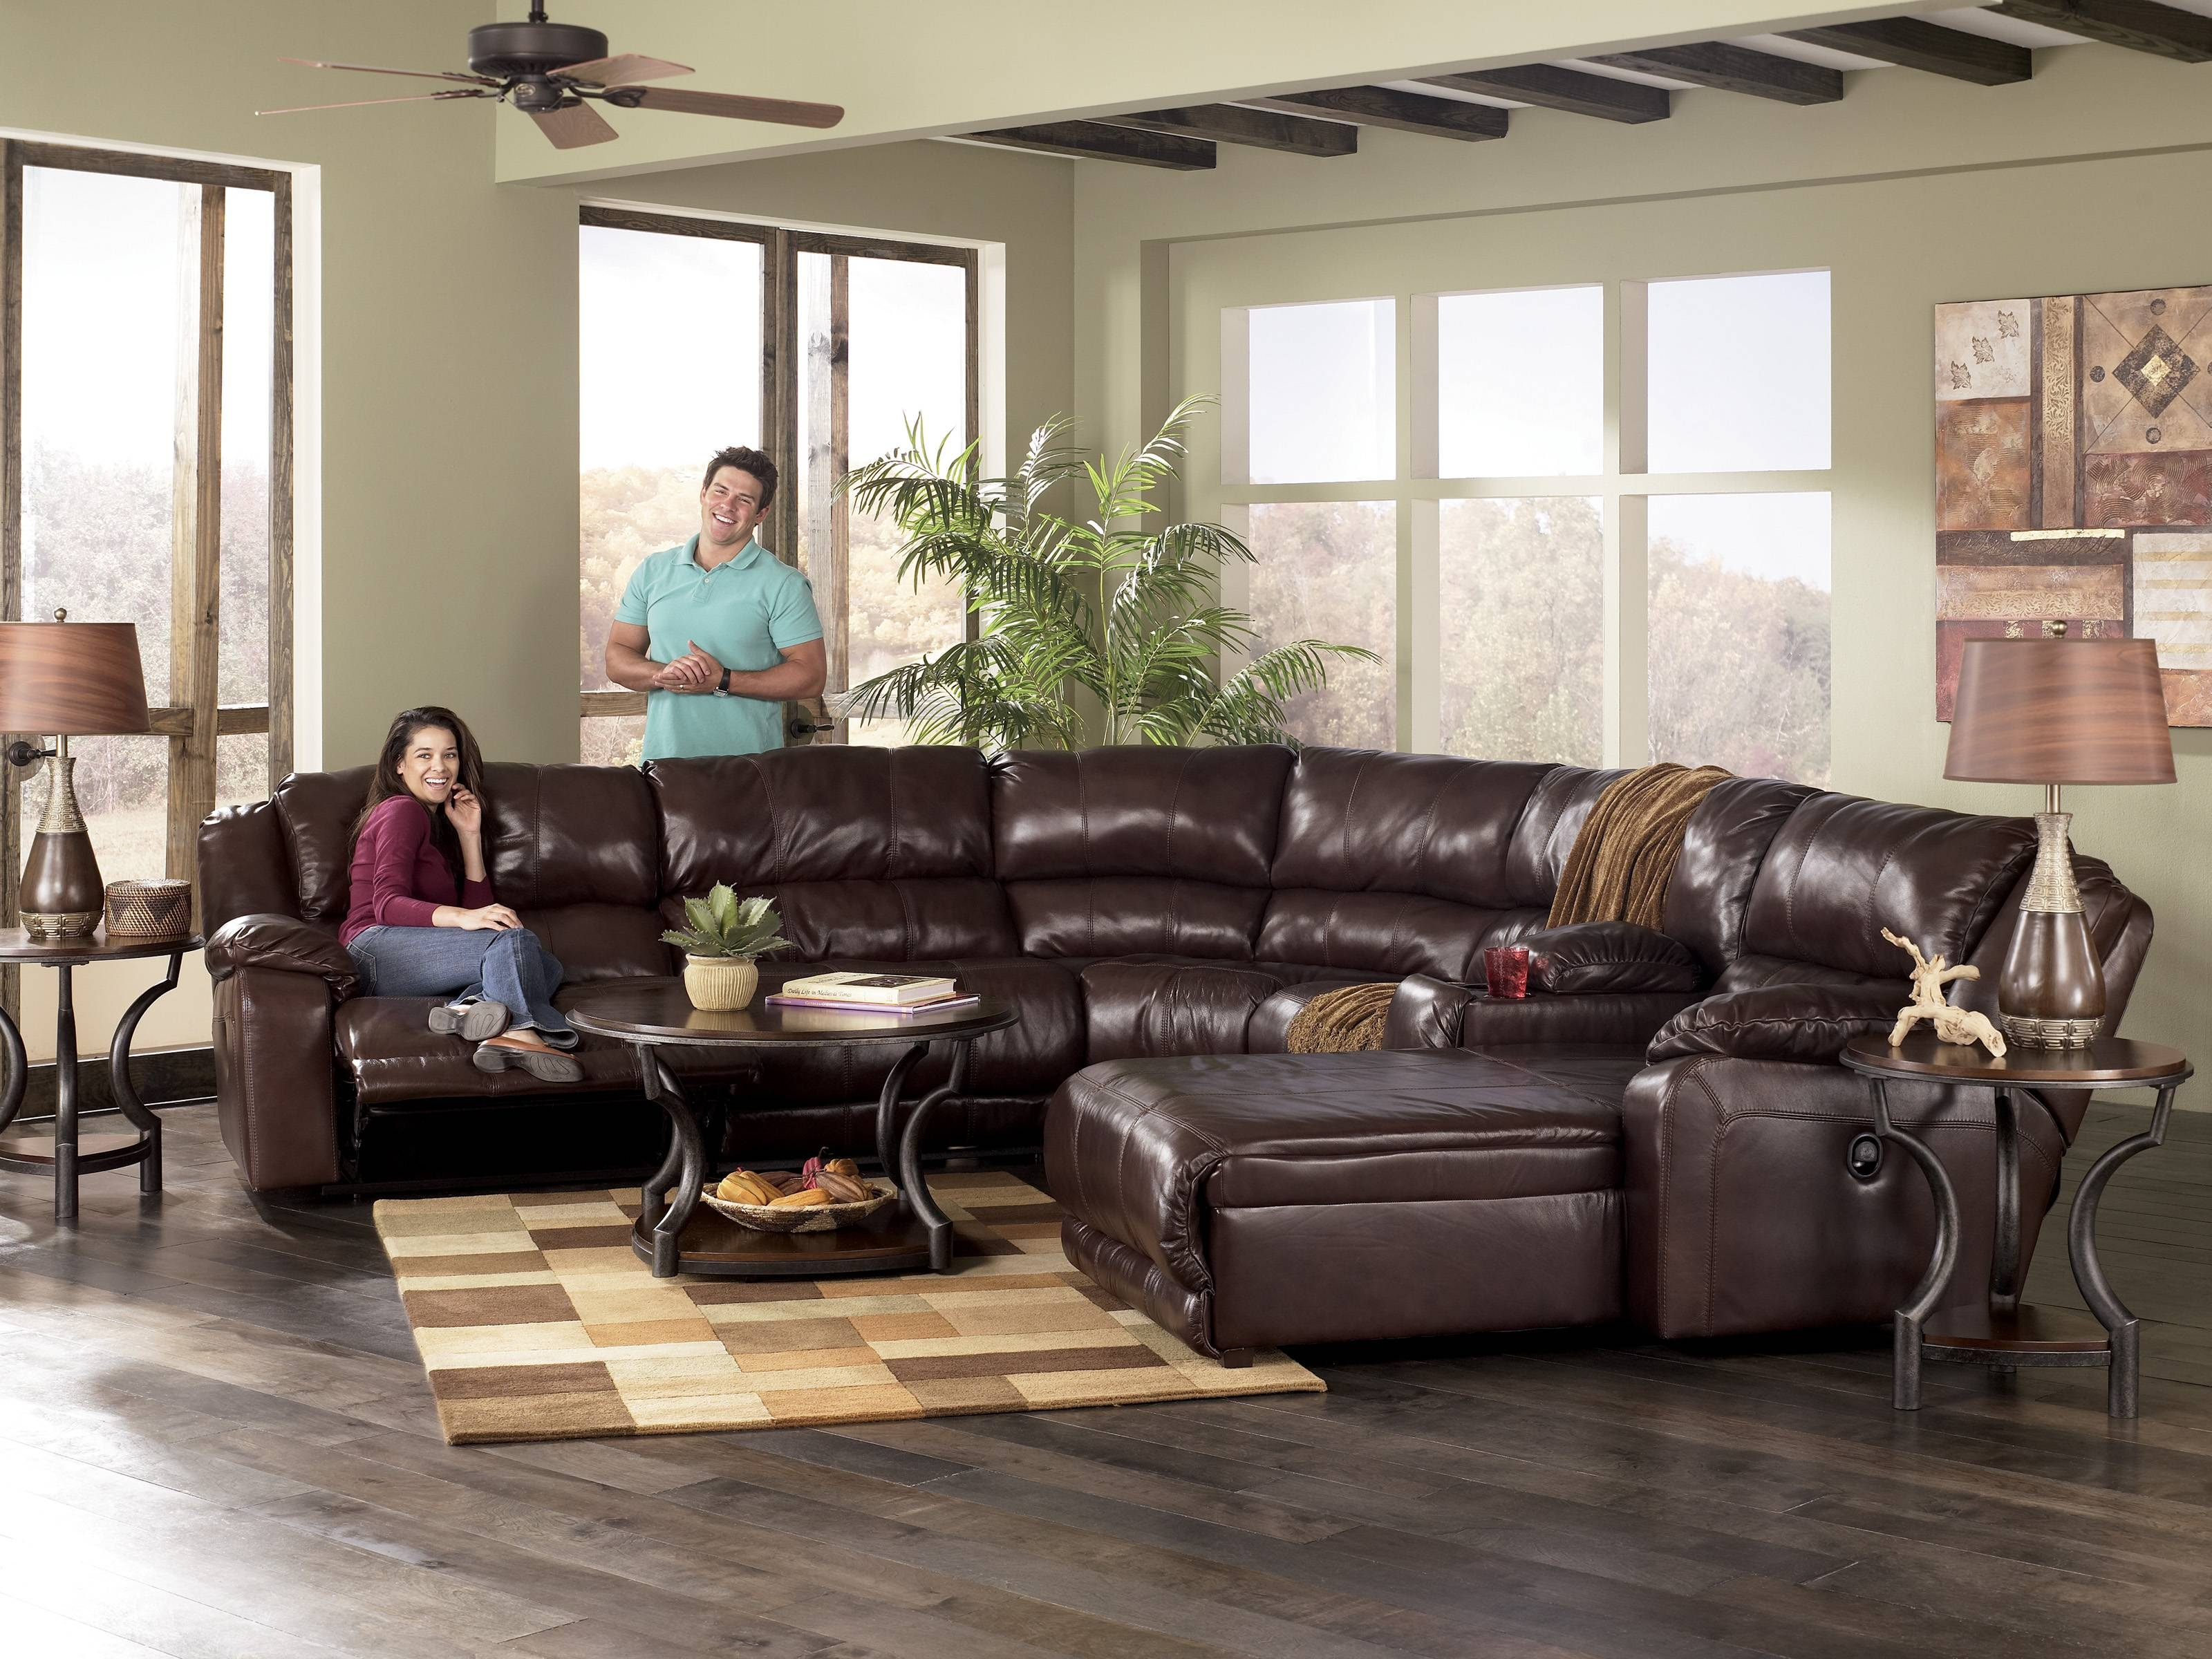 Inspiring Faux Leather Sectional Sofa Ashley 69 For Reclining in Ashley Faux Leather Sectional Sofas (Image 11 of 15)